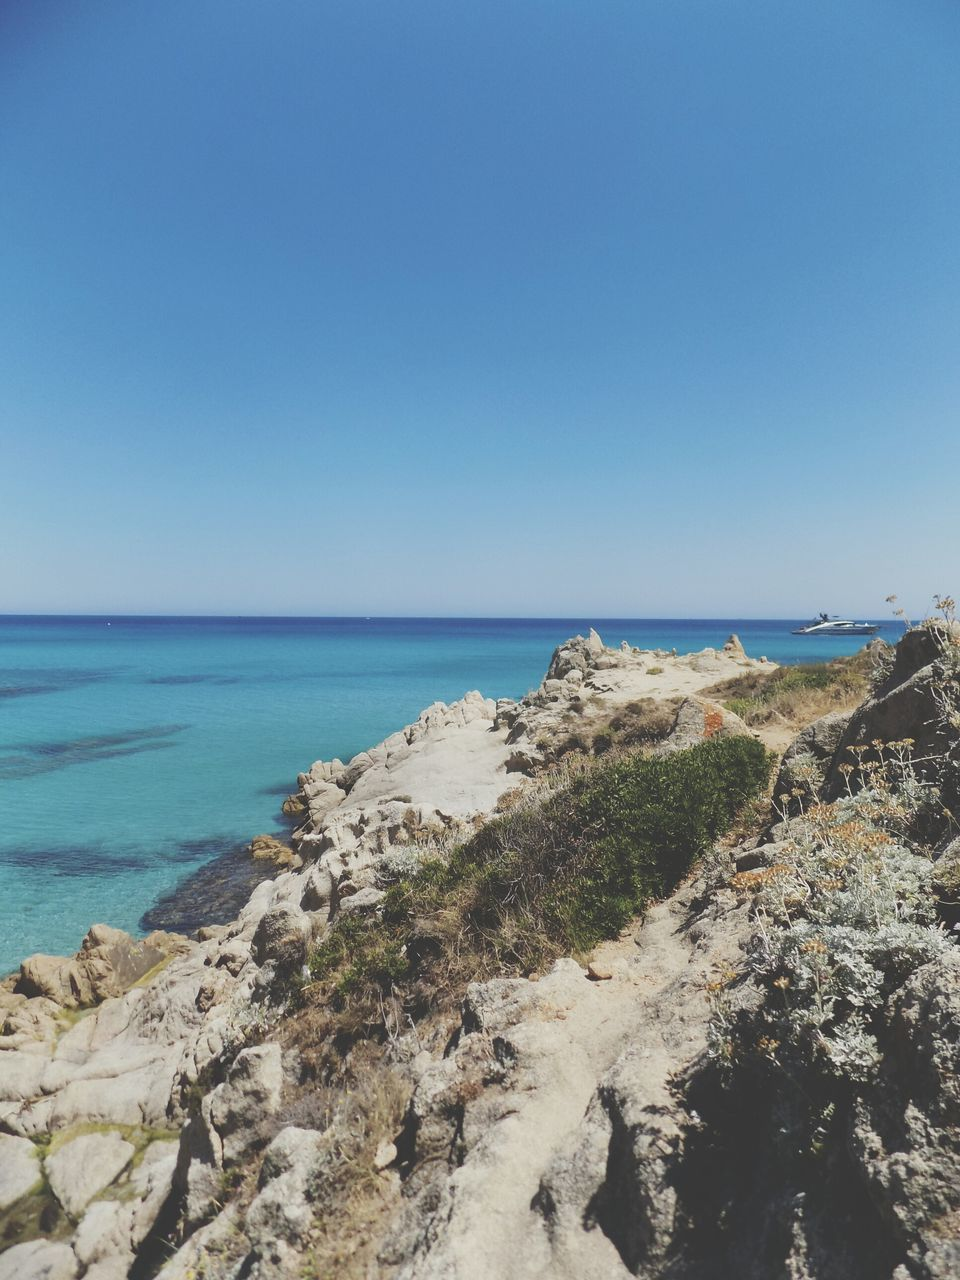 sea, water, nature, horizon over water, scenics, beauty in nature, clear sky, tranquil scene, copy space, tranquility, beach, outdoors, blue, day, no people, sky